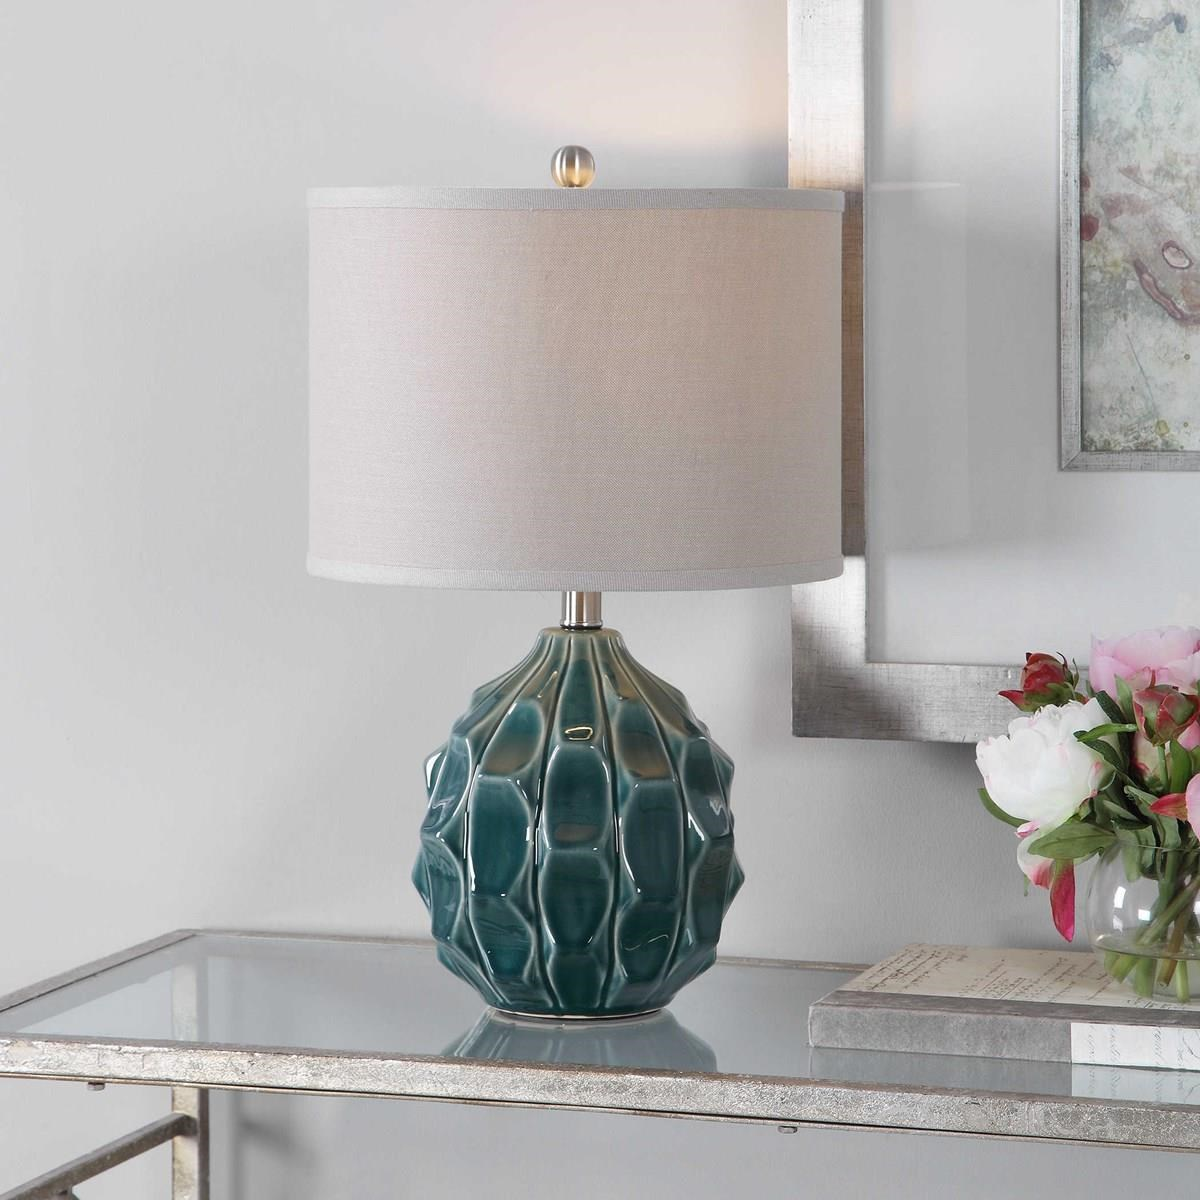 Table Lamps TAYLOR TABLE LAMP by Unique at Walker's Furniture